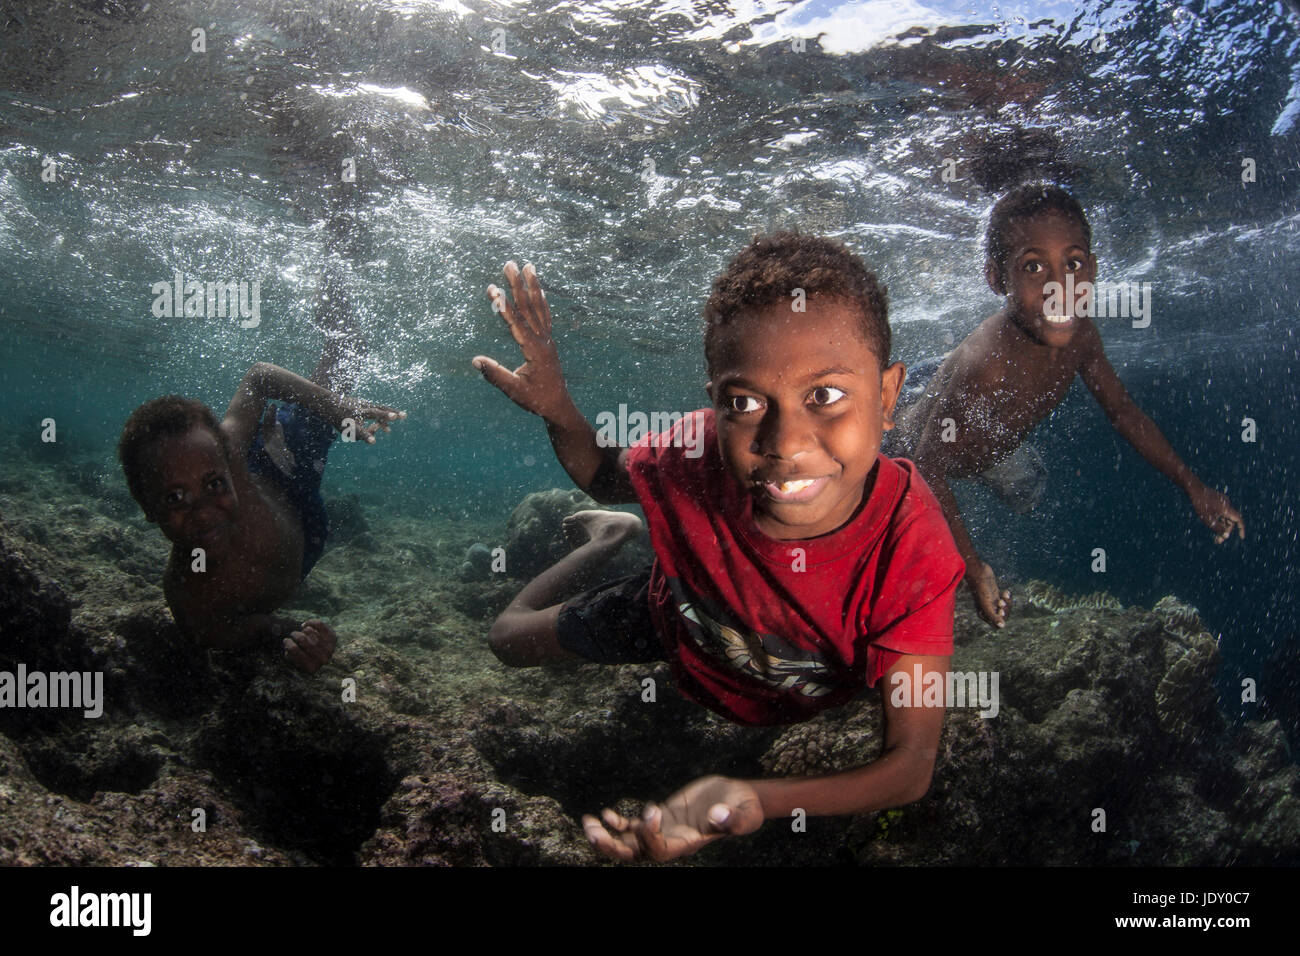 Kids splashing in Ocean, Melanesia, Pacific Ocean, Solomon Islands - Stock Image